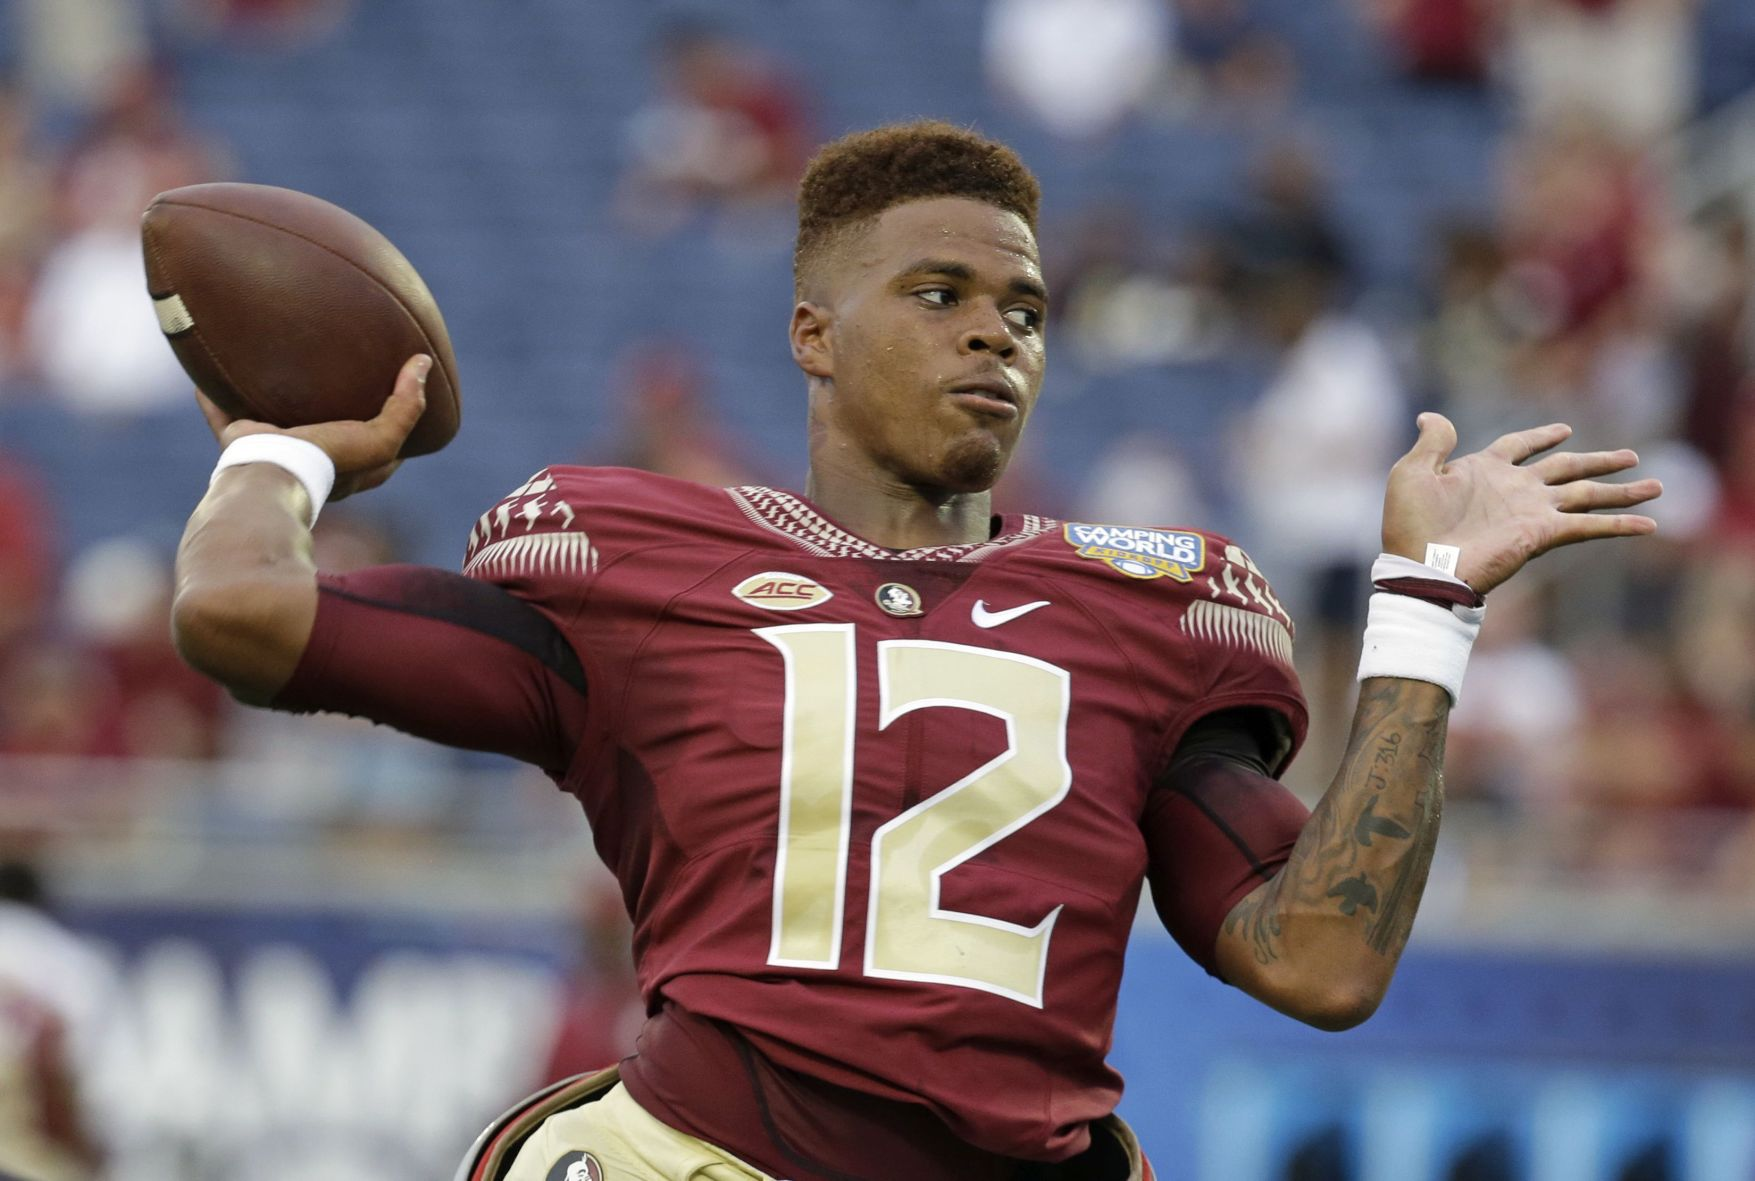 Seminoles lose to Alabama as Francois leaves with injury